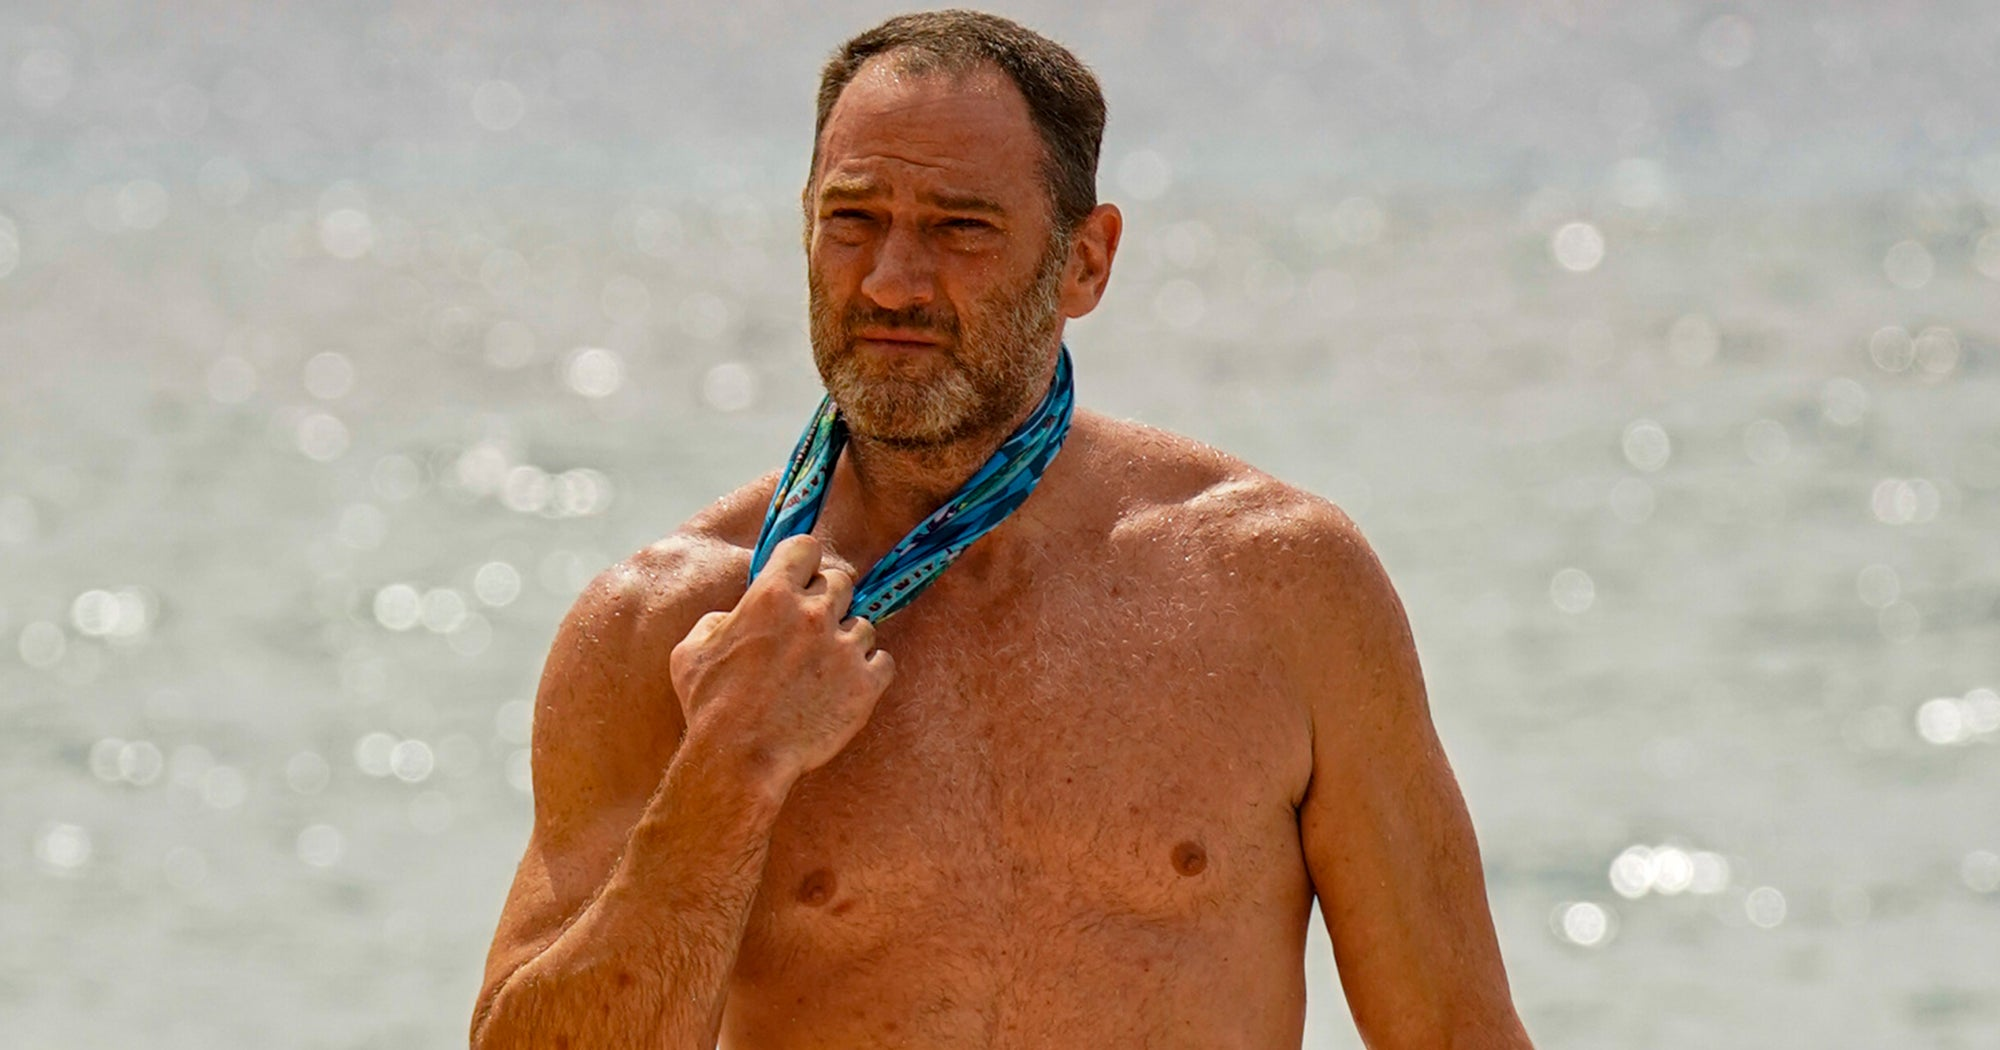 Survivor Contestants Under Fire For Mishandling Misconduct Accusations